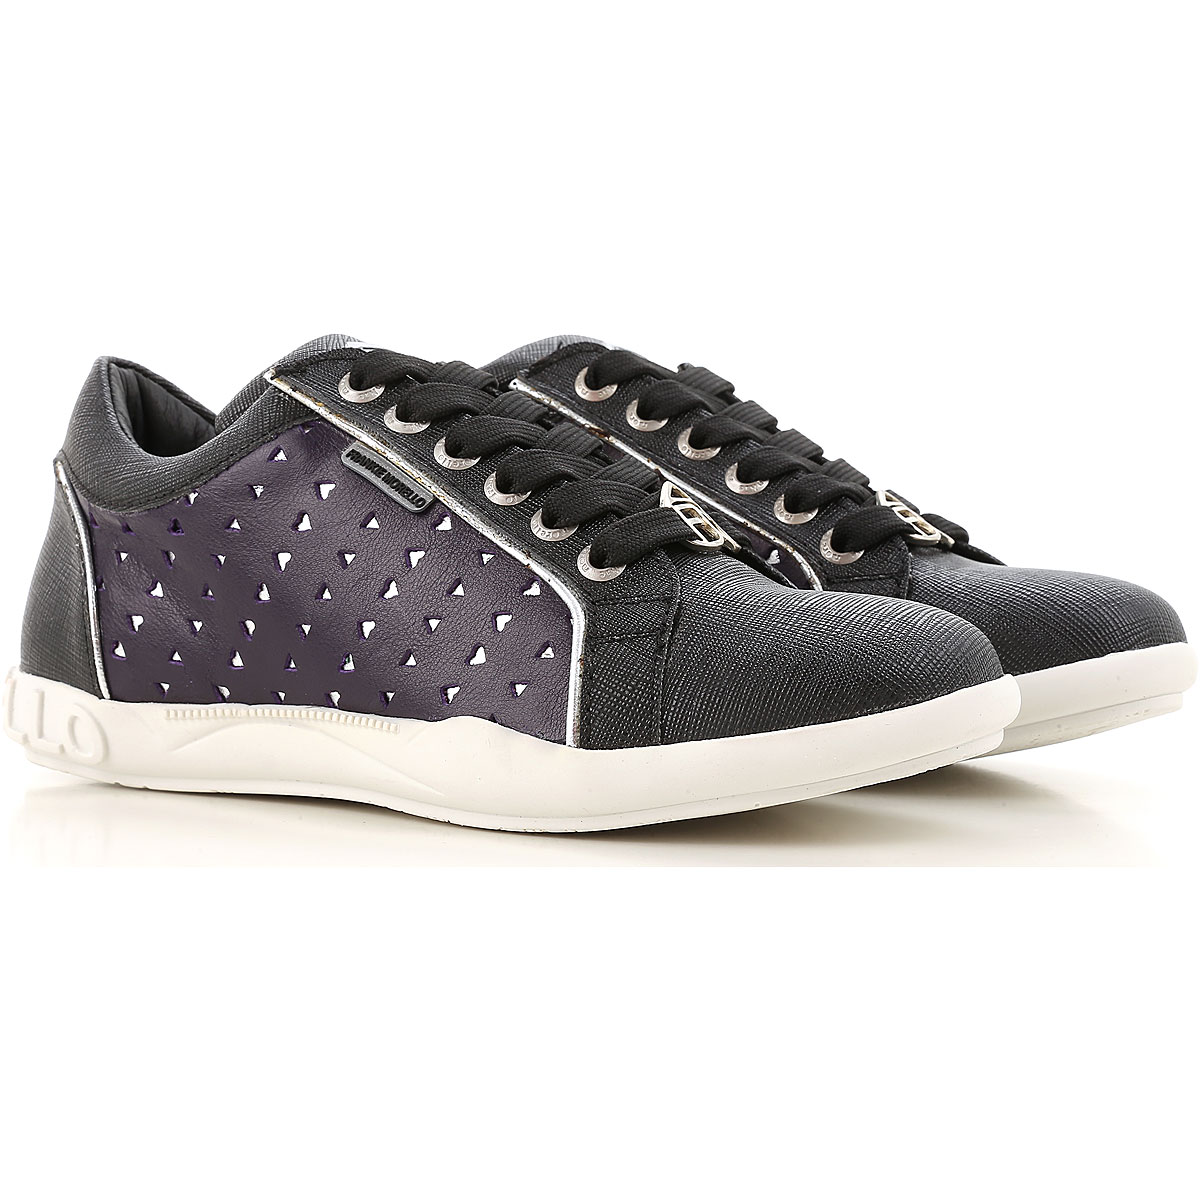 Image of Frankie Morello Sneakers for Women On Sale in Outlet, Black, Leather, 2017, 6